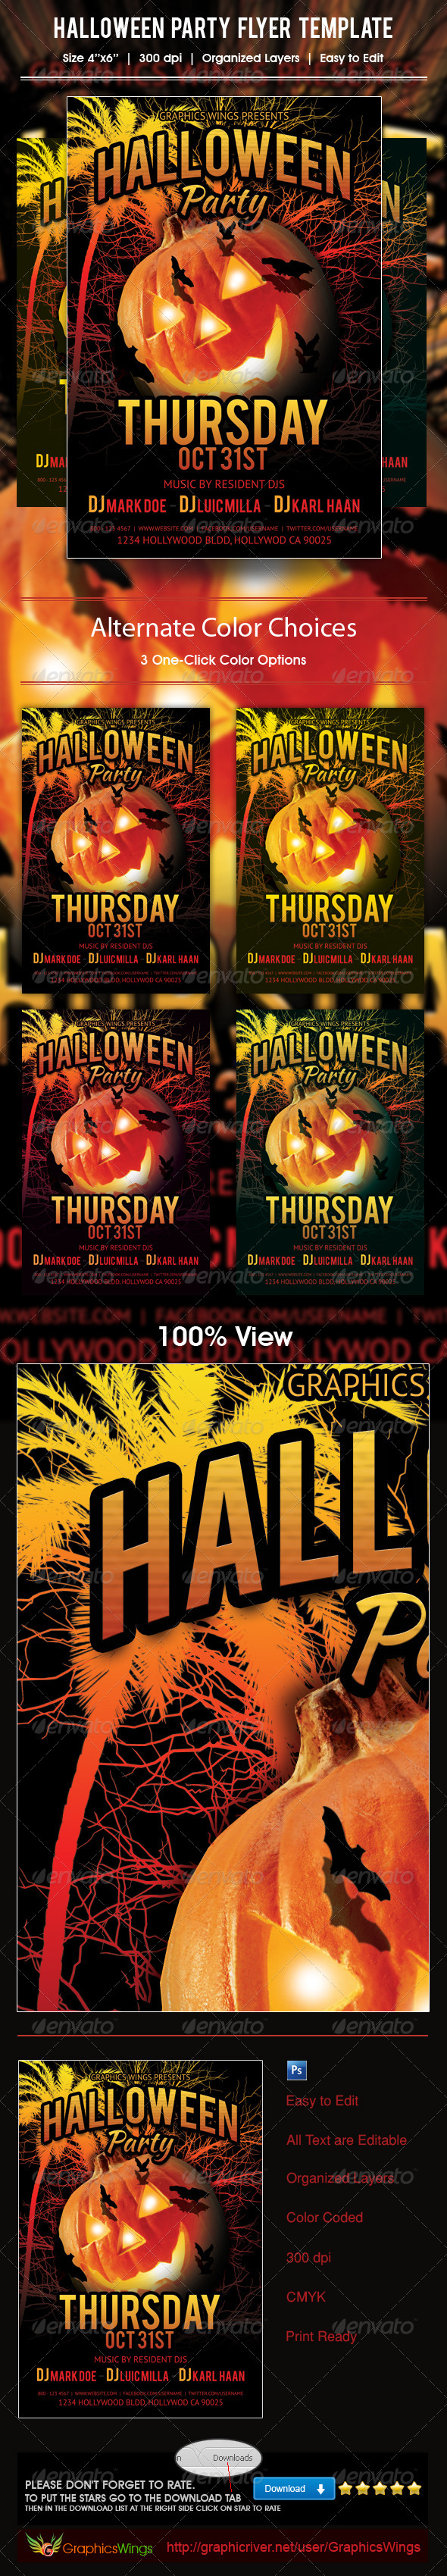 Halloween Party Flyer Template - Events Flyers